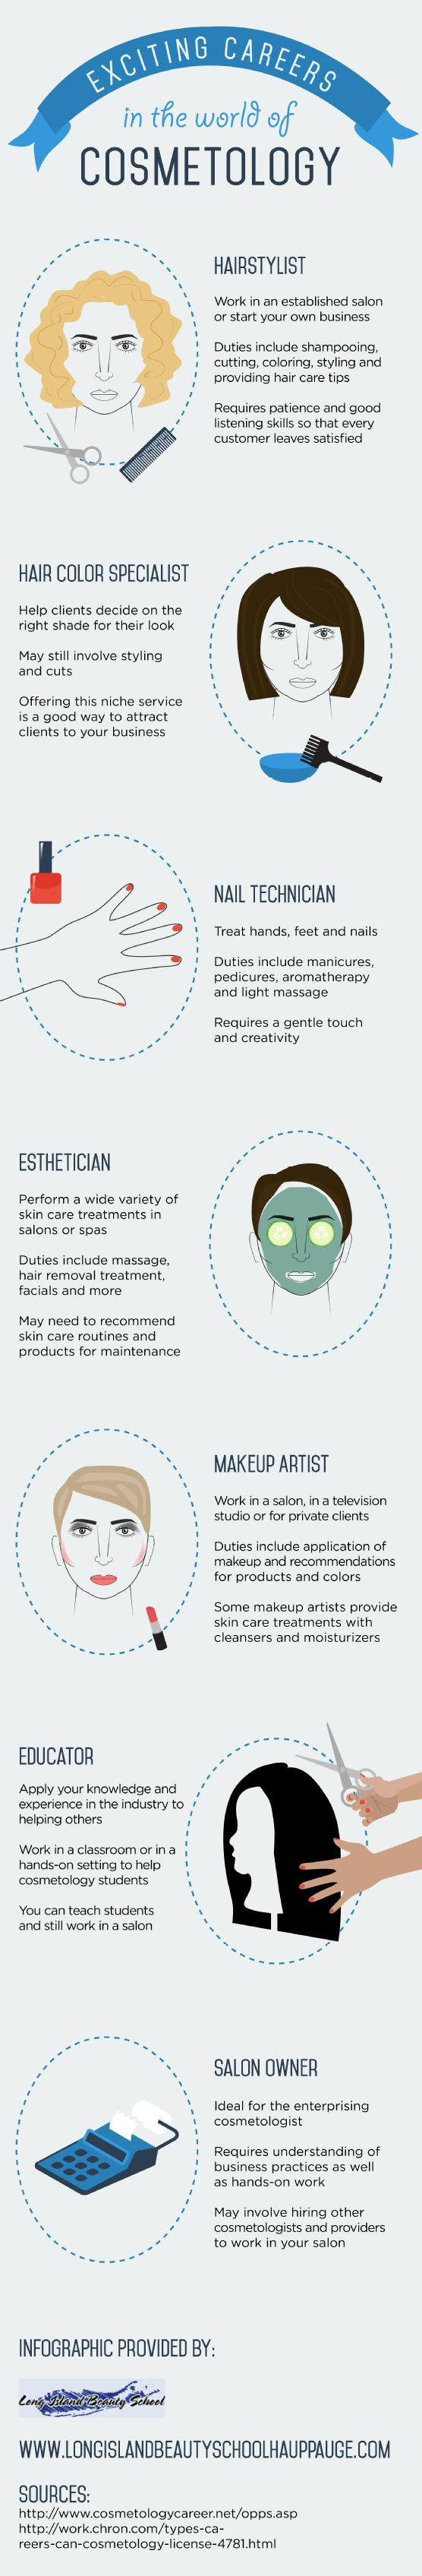 Did you know that makeup artists can work in salons